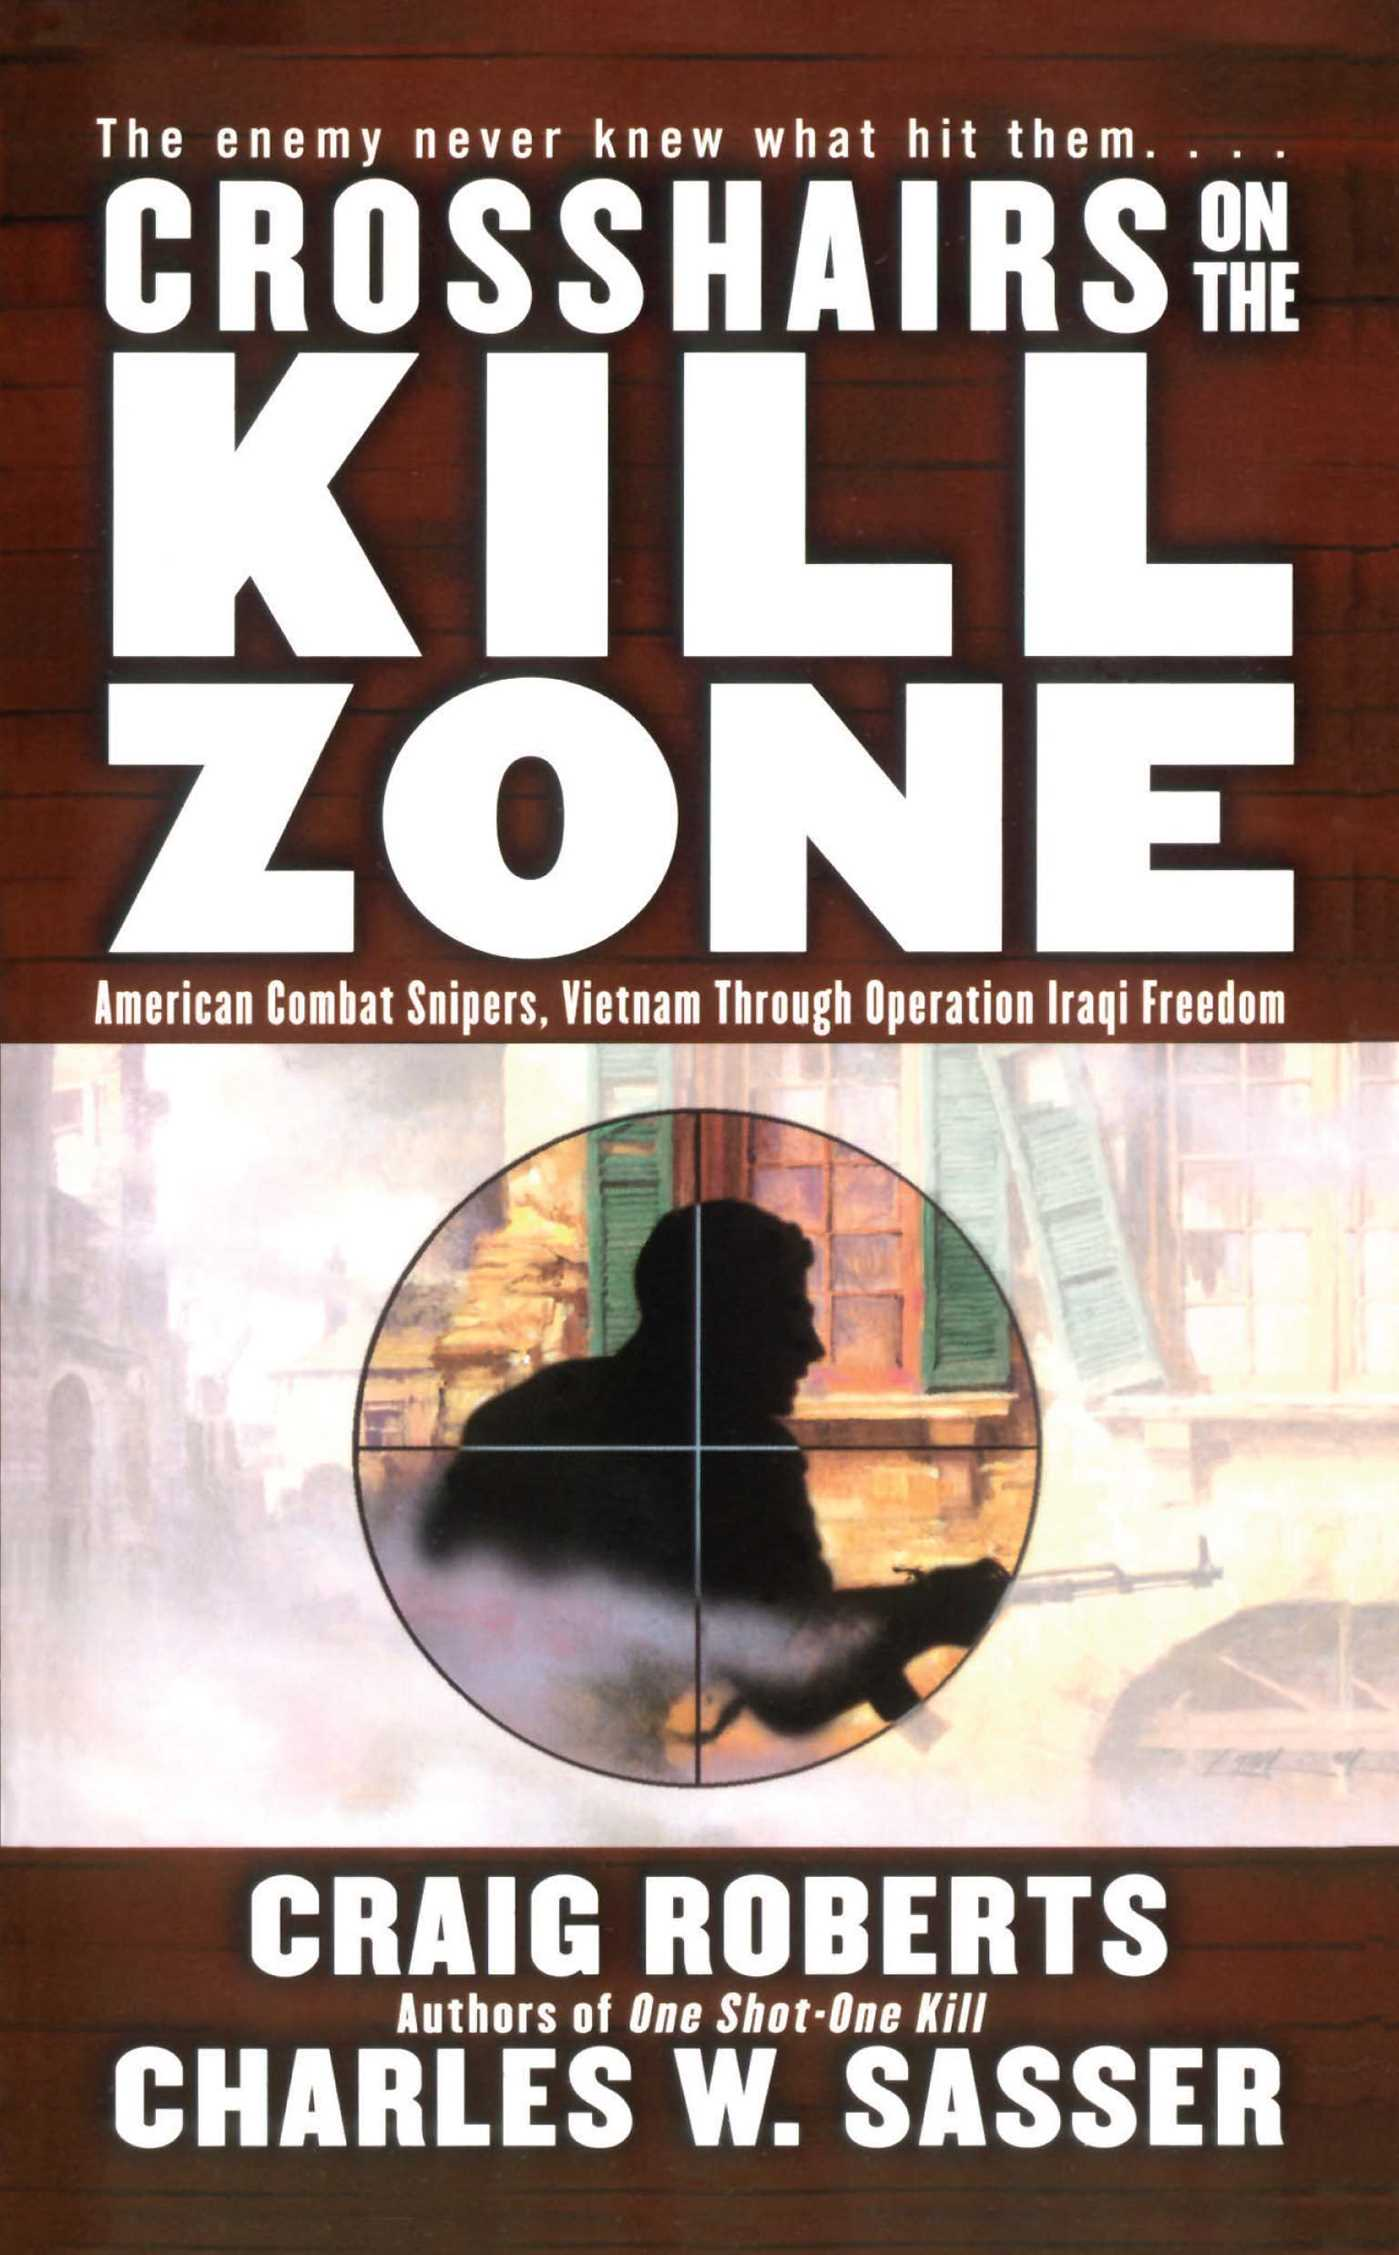 Crosshairs on the kill zone 9781416503620 hr